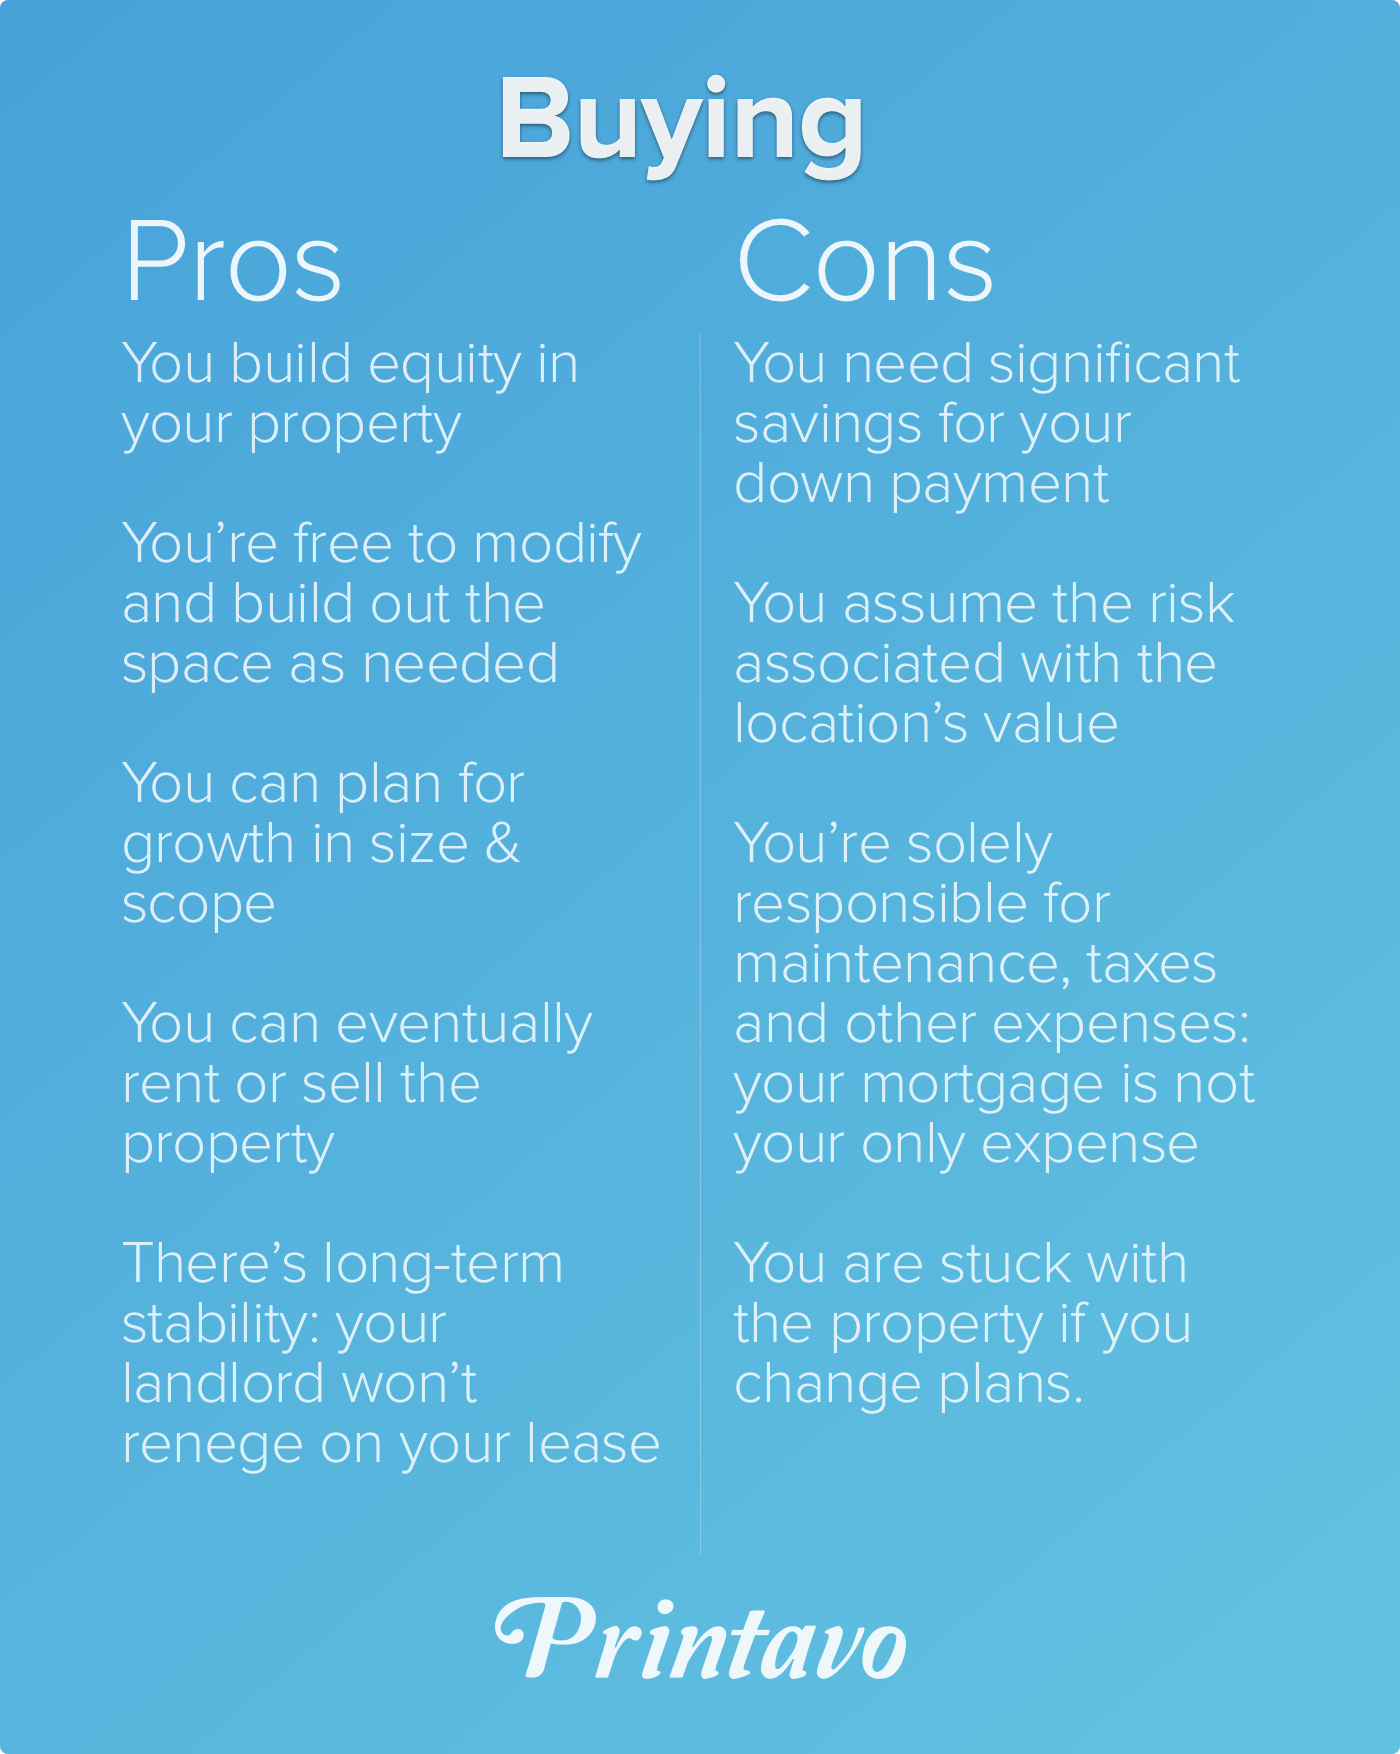 Buying Pros Cons.png